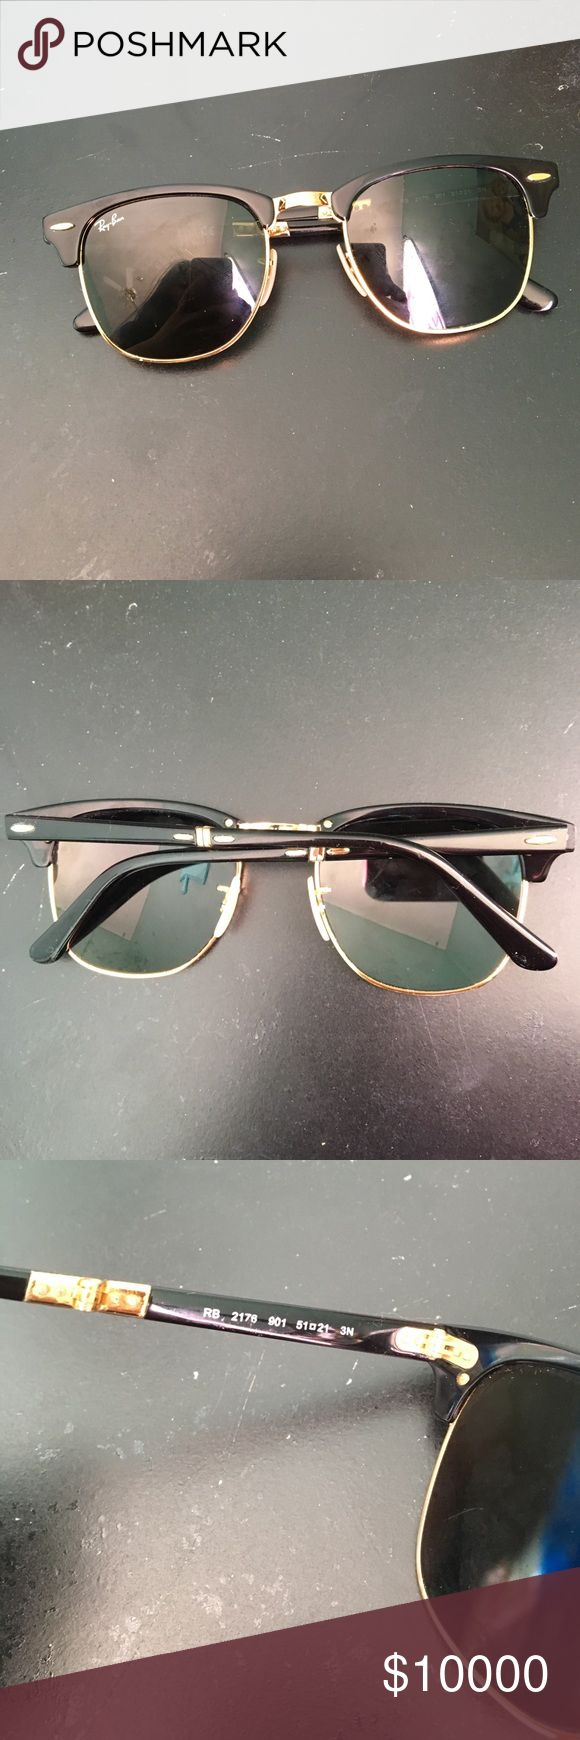 Ray bans sunglasses Trading and buying! In great condition kinda dirty but will clean before shipped. Trading, looking for ray bans aviators or Erika. You can now buy this item if you want. I will accept both trade and buying! Doesn't come with a case! Authentic! Ray-Ban Accessories Sunglasses